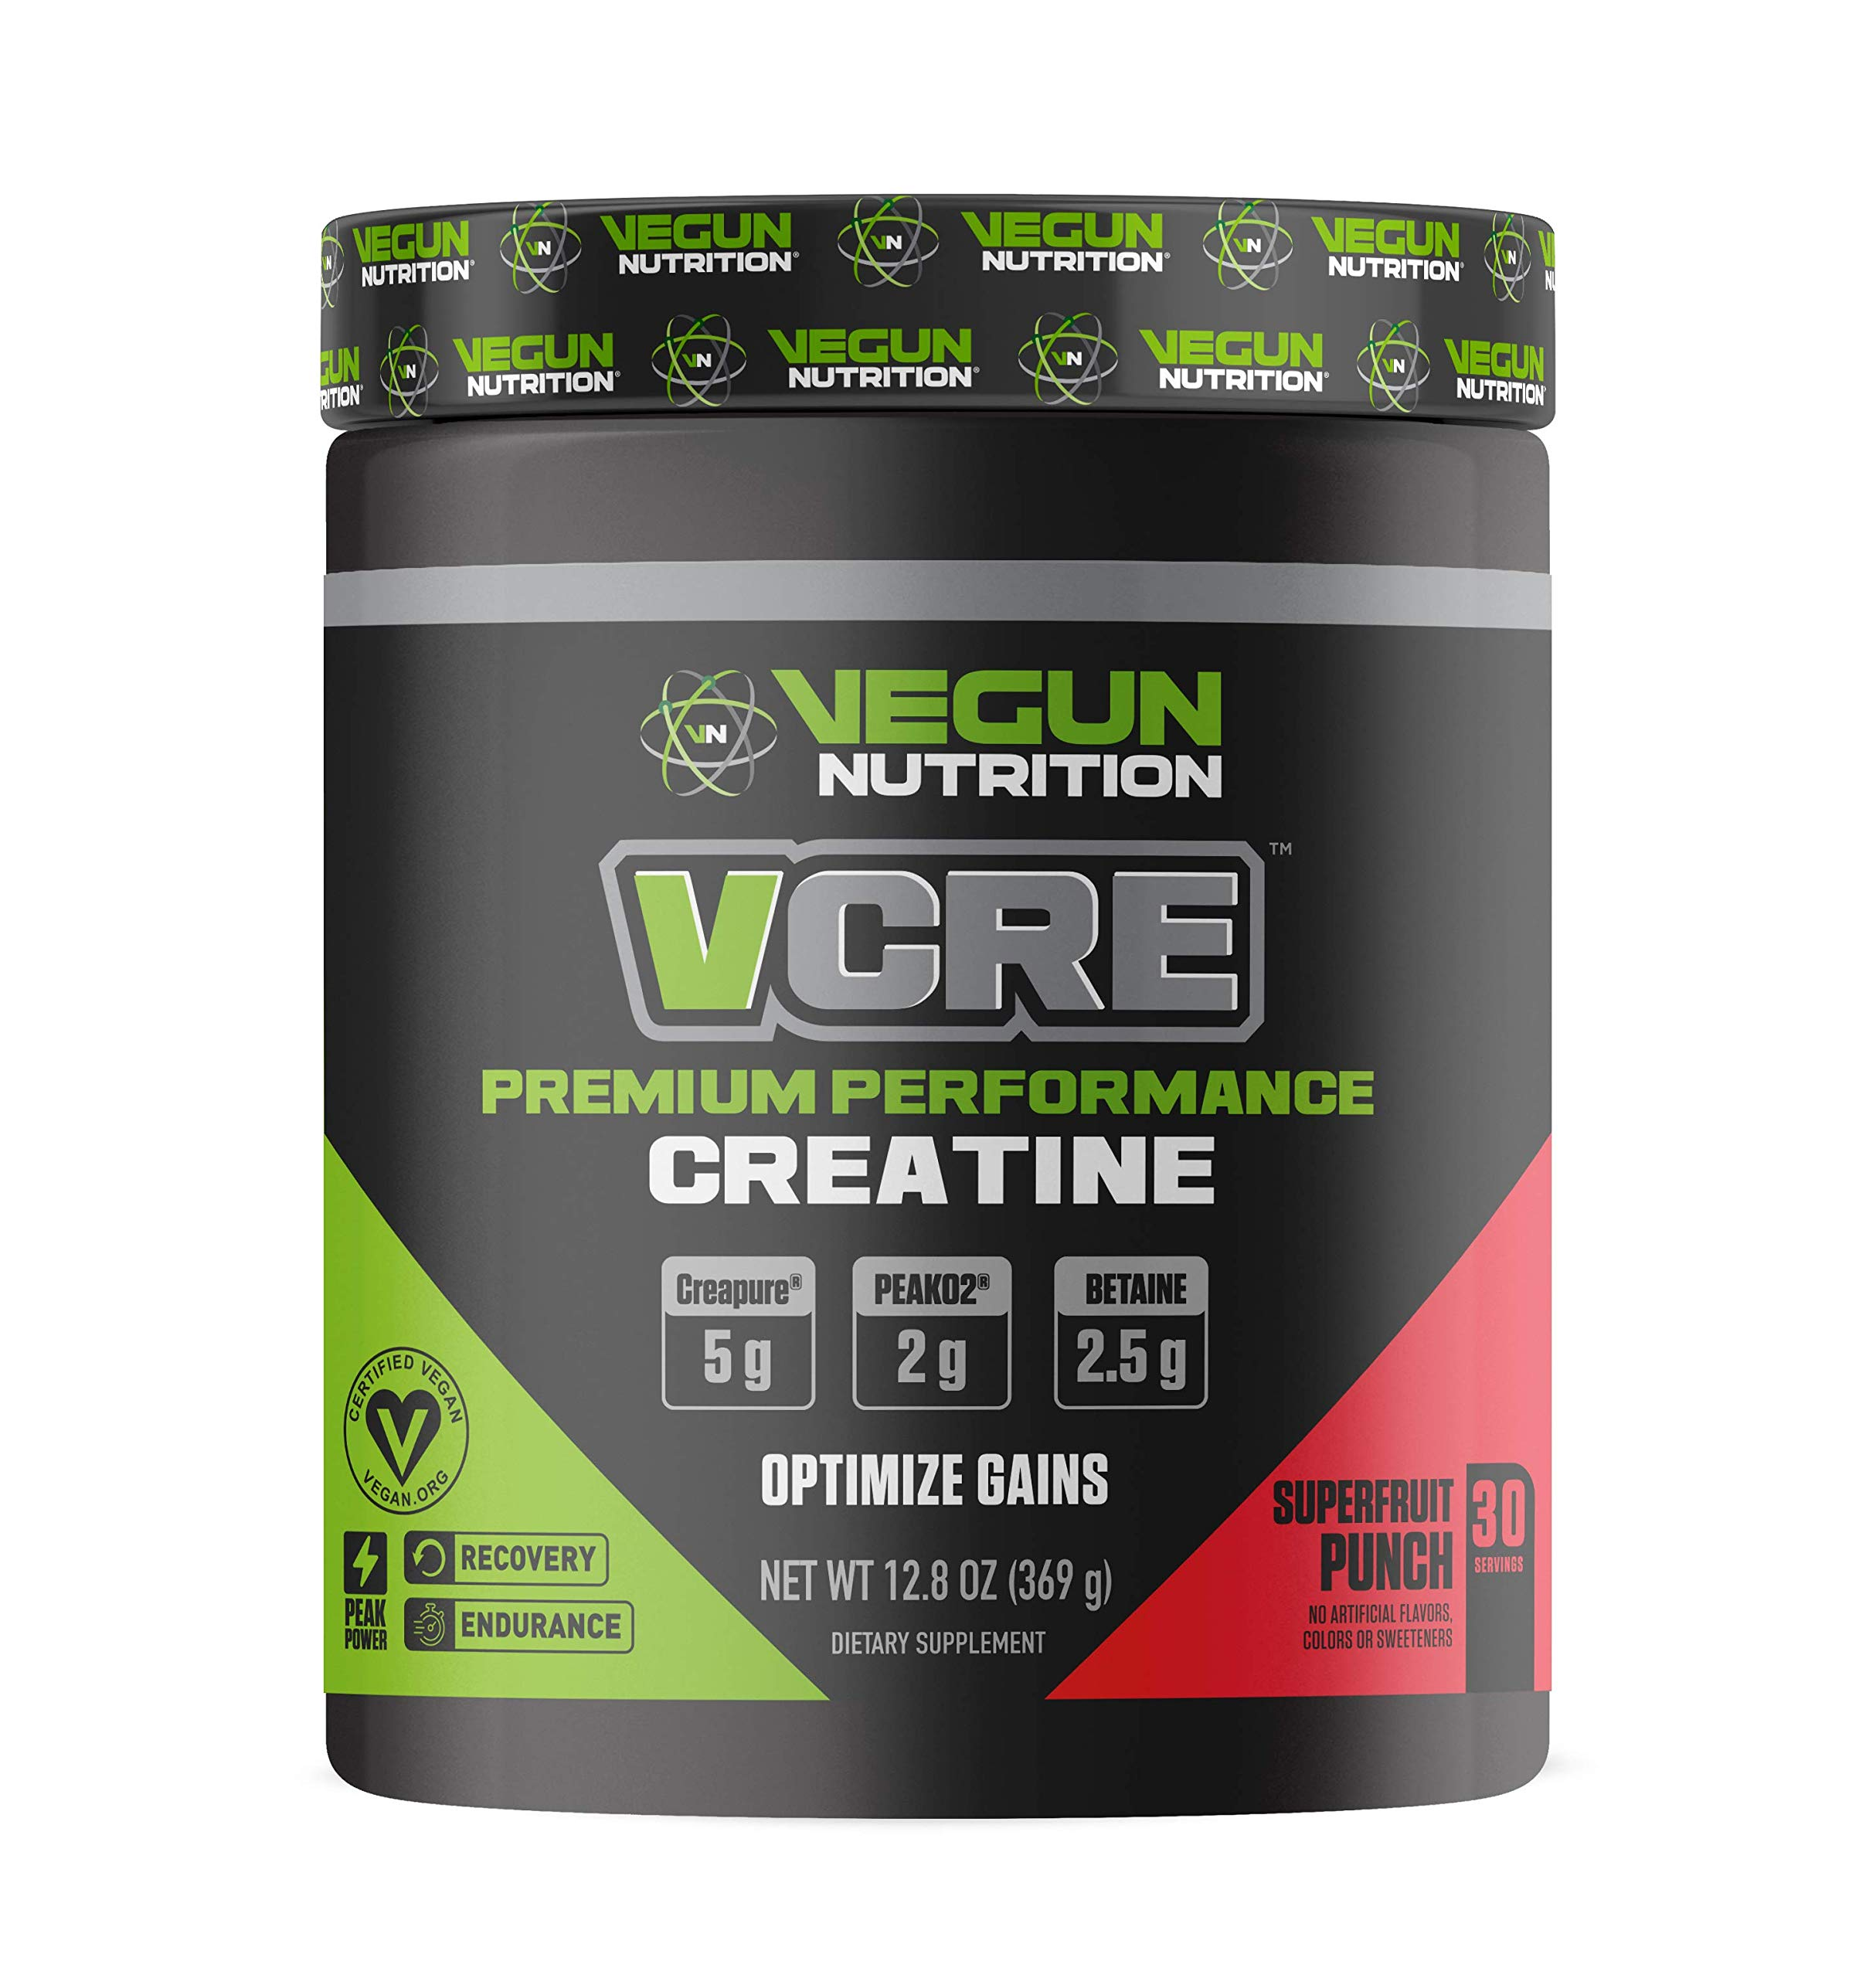 Vegun Nutrition - VCRE - Vegan Friendly Creatine - Pure Micronized Creatine Monohydrate - Post Workout Supplement for Men & Women - All Natural Lean Muscle Builder - Vegan Friendly - Increase Recovery by Vegun Nutrition